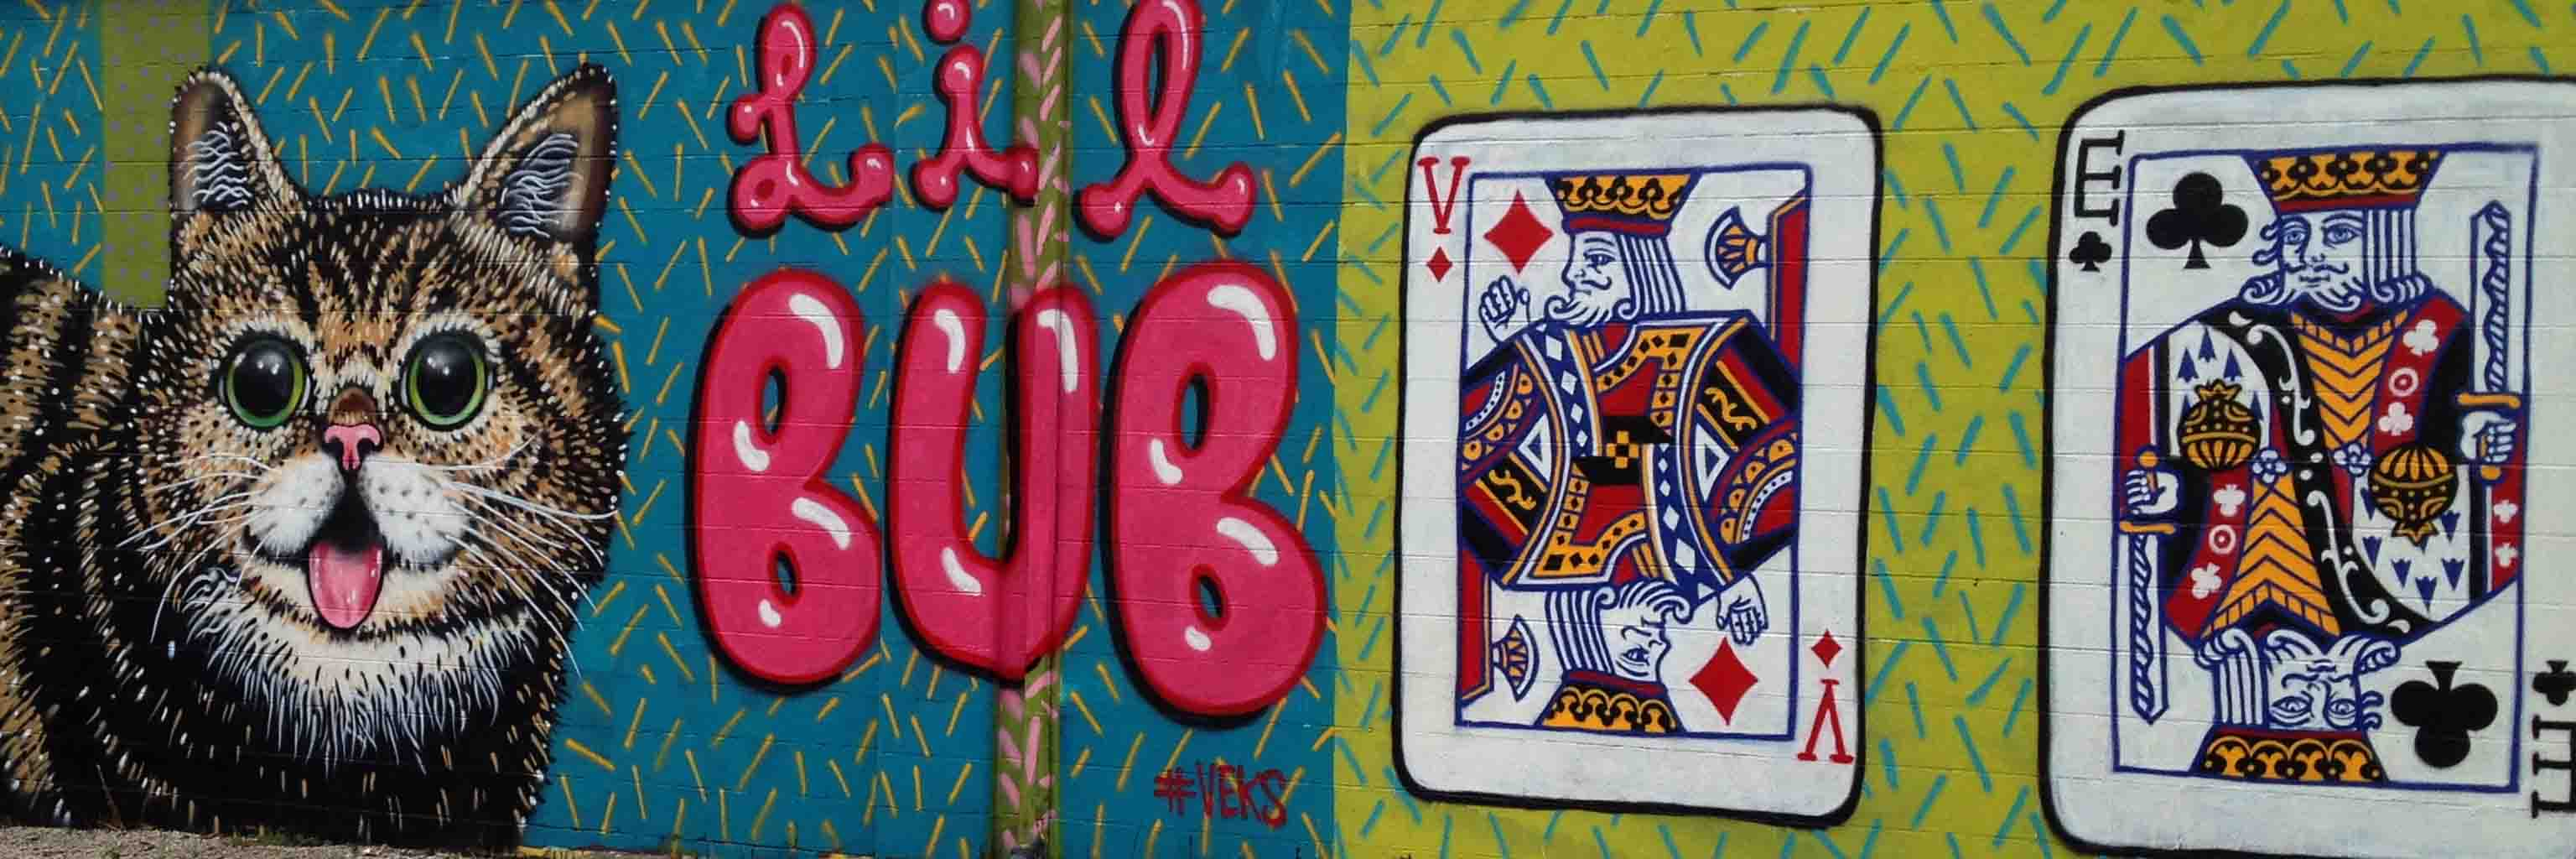 A mural depicting Lil Bub the cat and two playing cards.